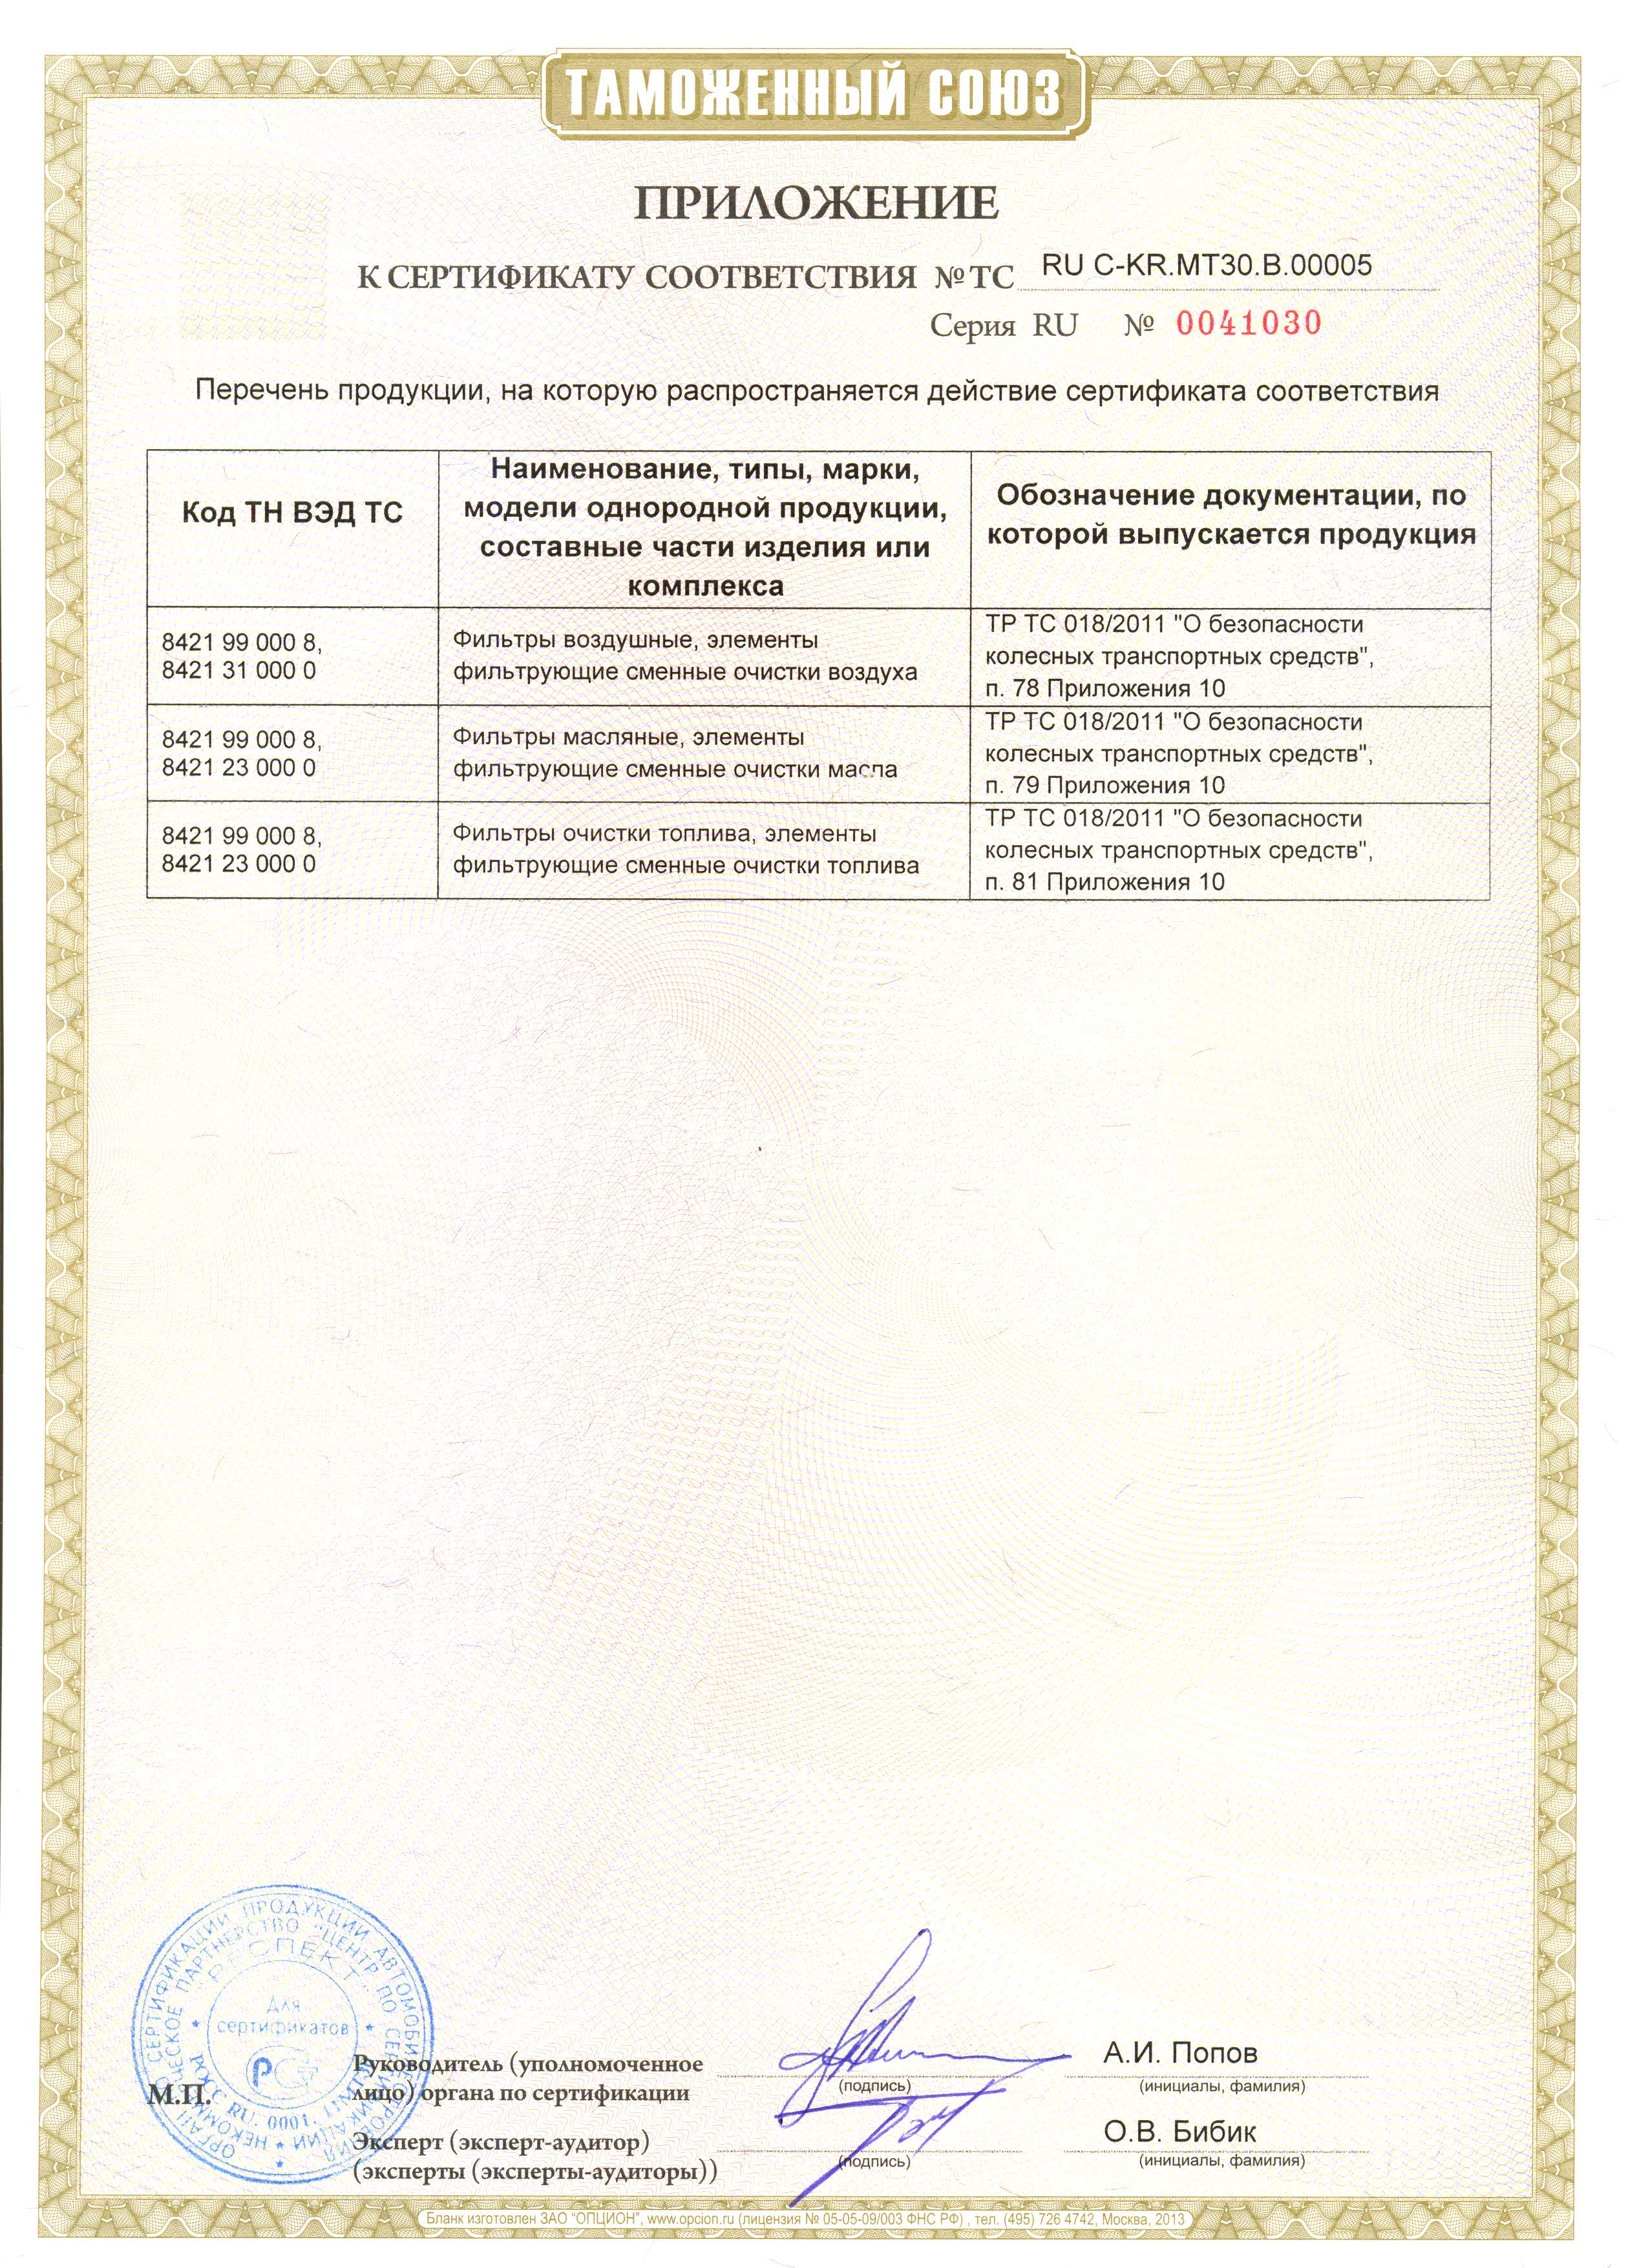 interparts eac certificate sub kr